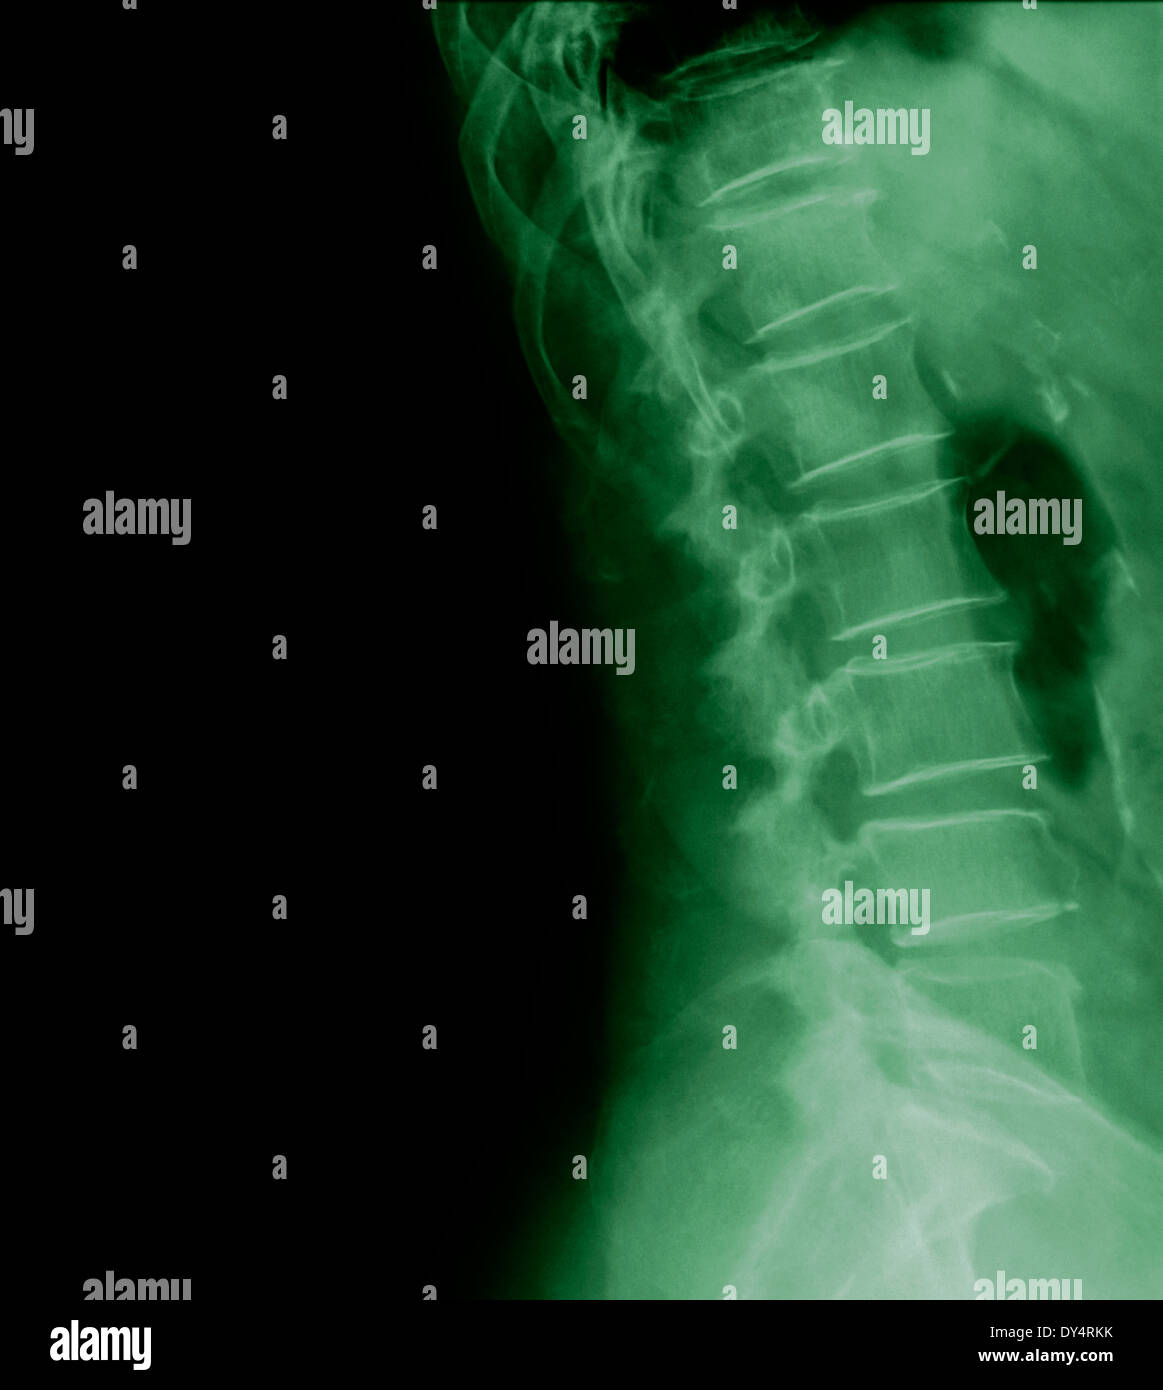 X-ray of lumbar spine of 77 year old patient, side view - Stock Image